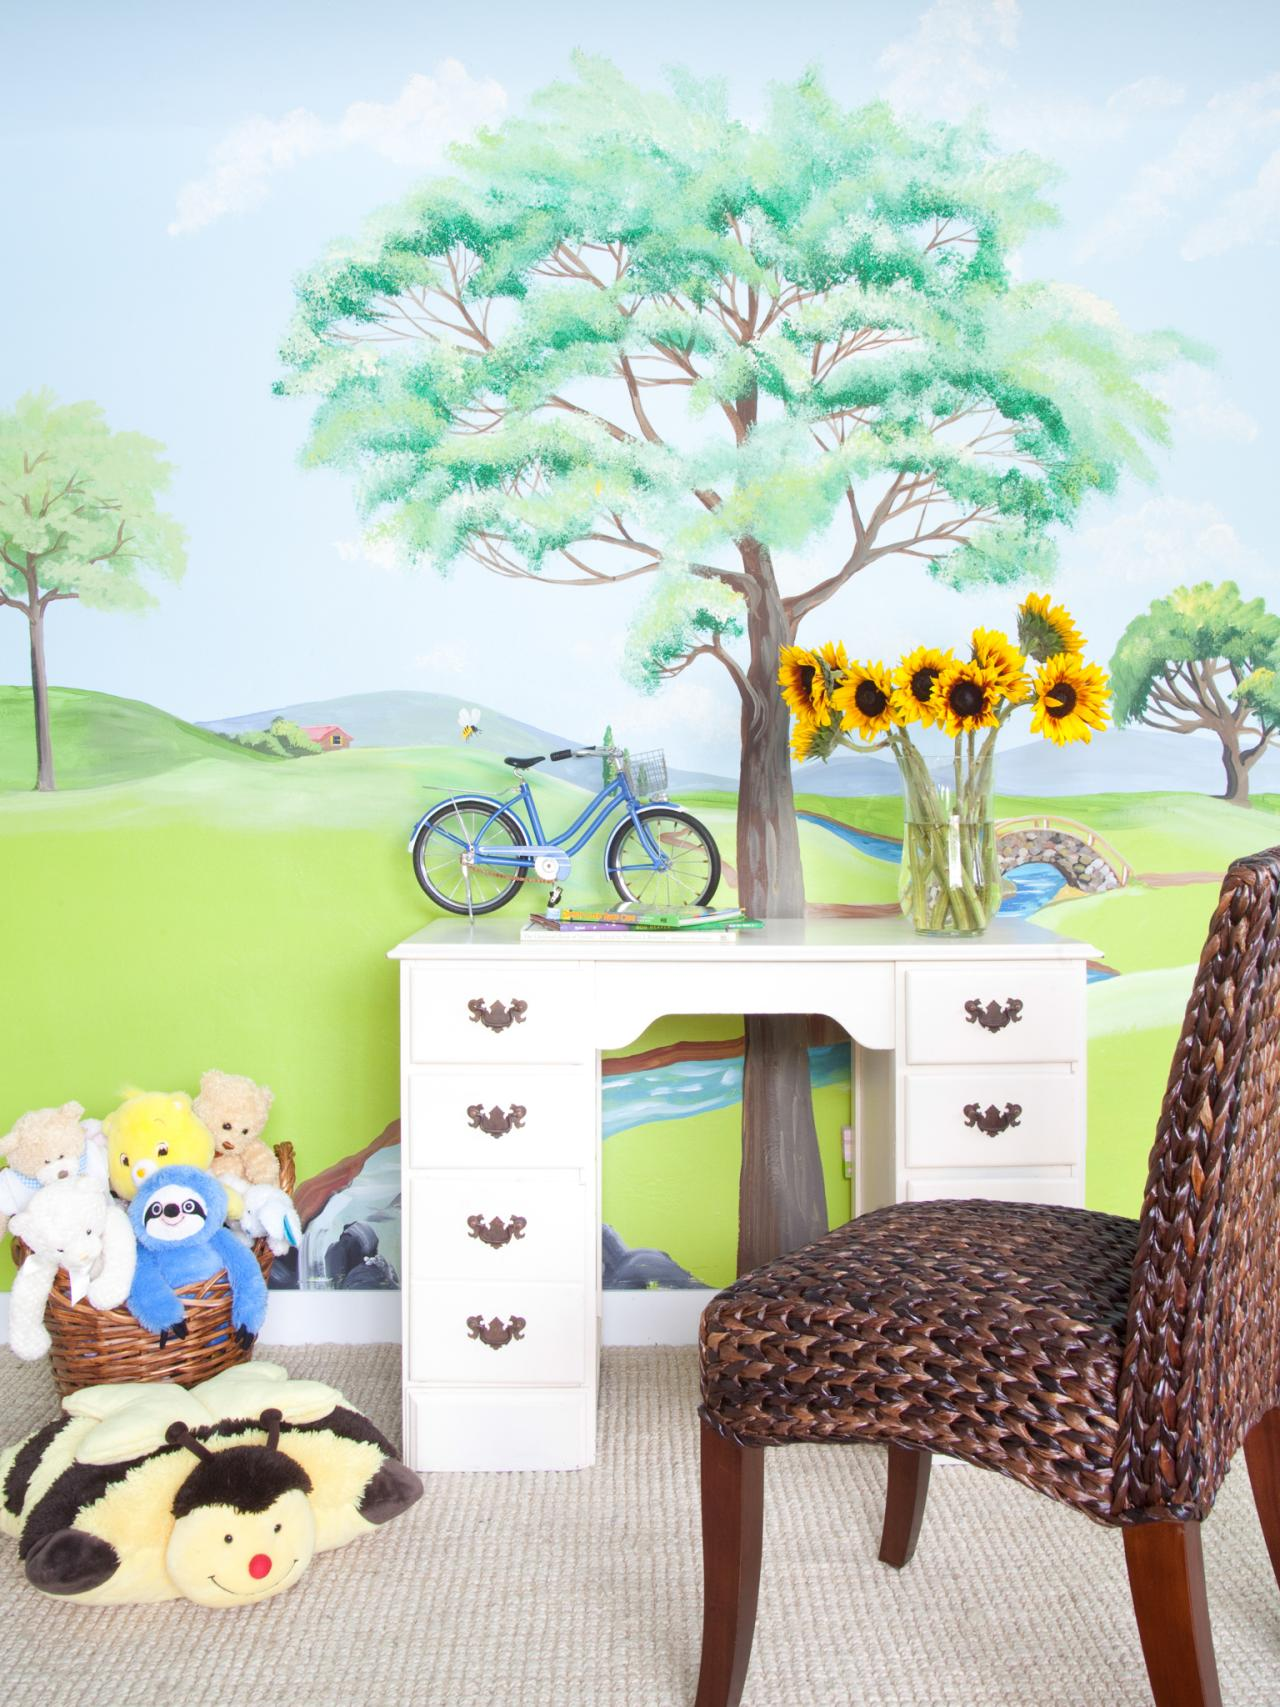 Tips and tricks for creating wall murals in a kid 39 s room diy for Diy wall photo mural